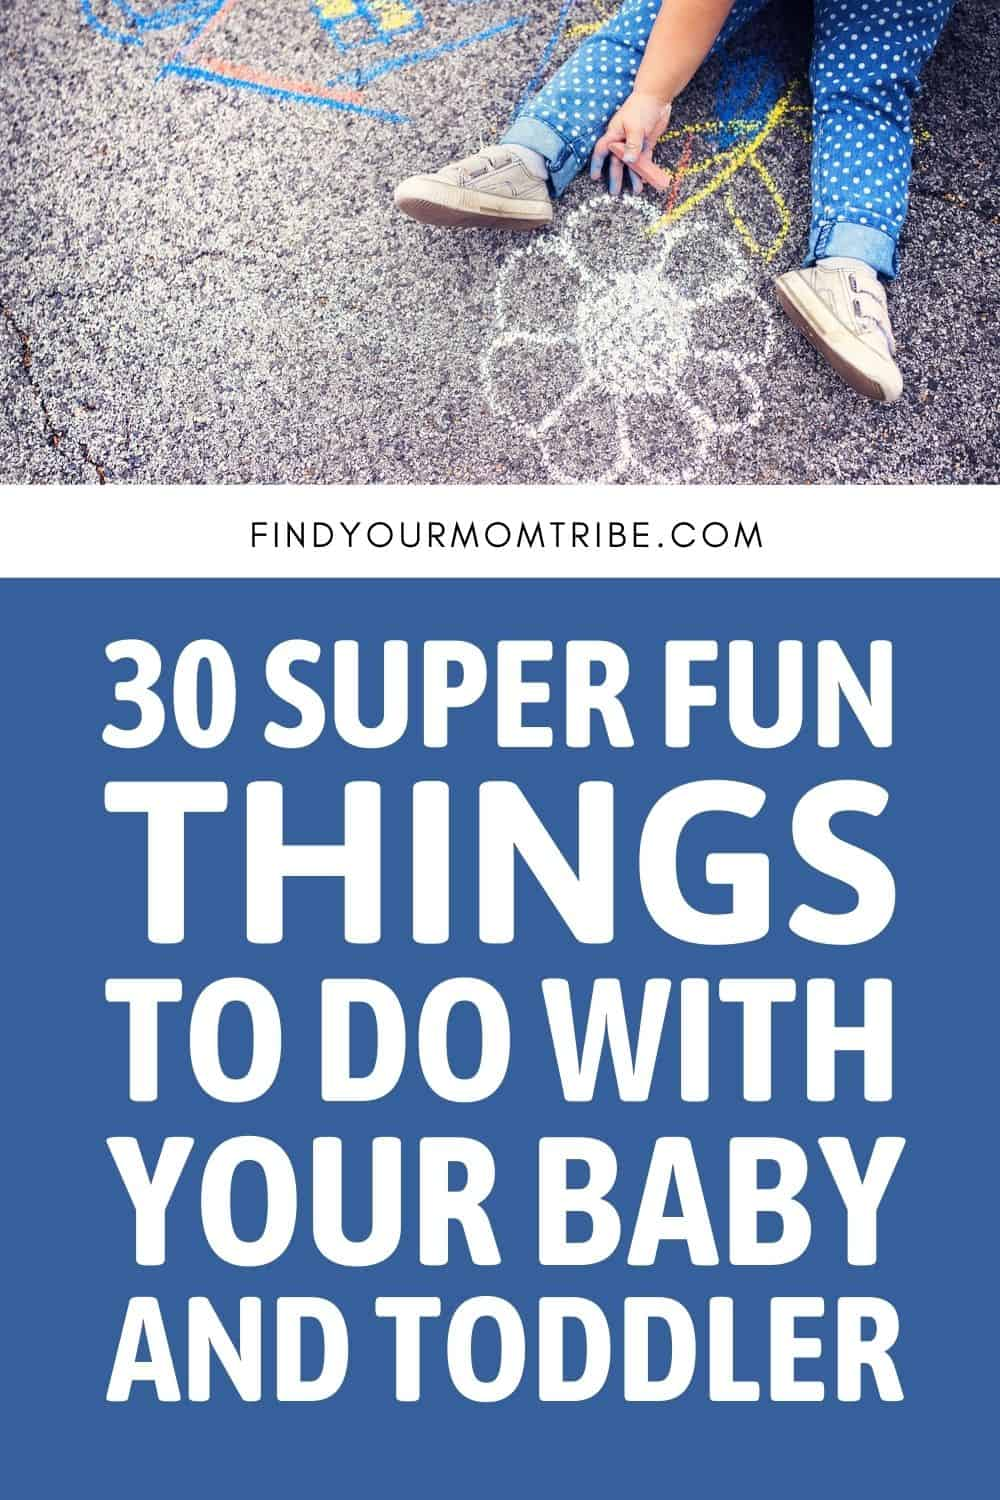 30 Super Fun Things To Do With Your Baby And Toddler